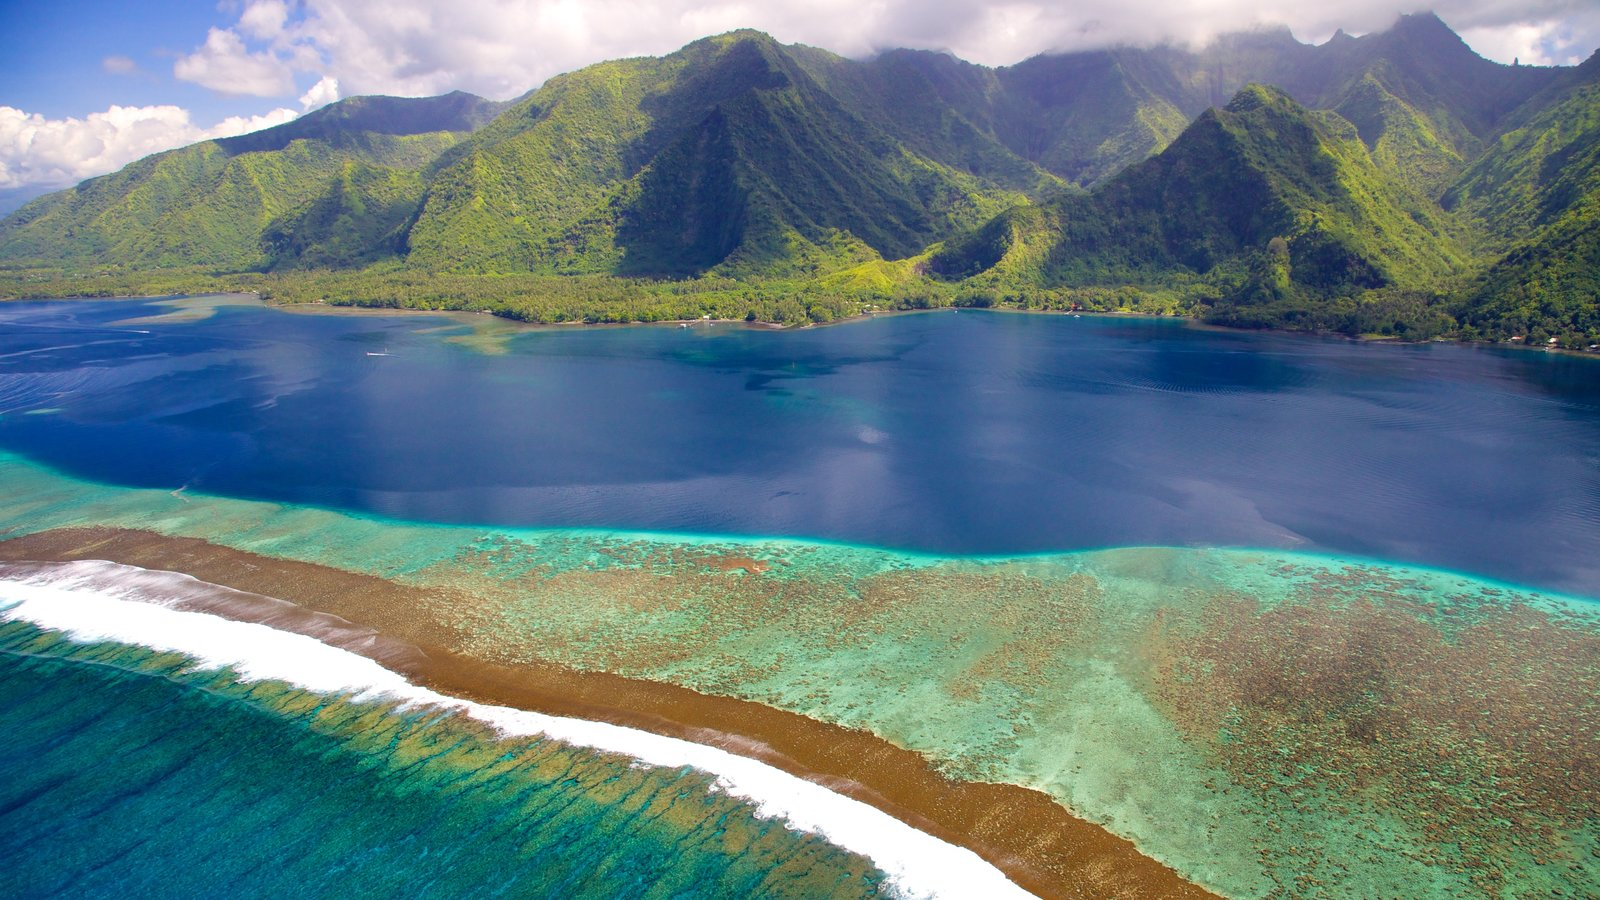 Tahiti featuring mountains, island views and coral